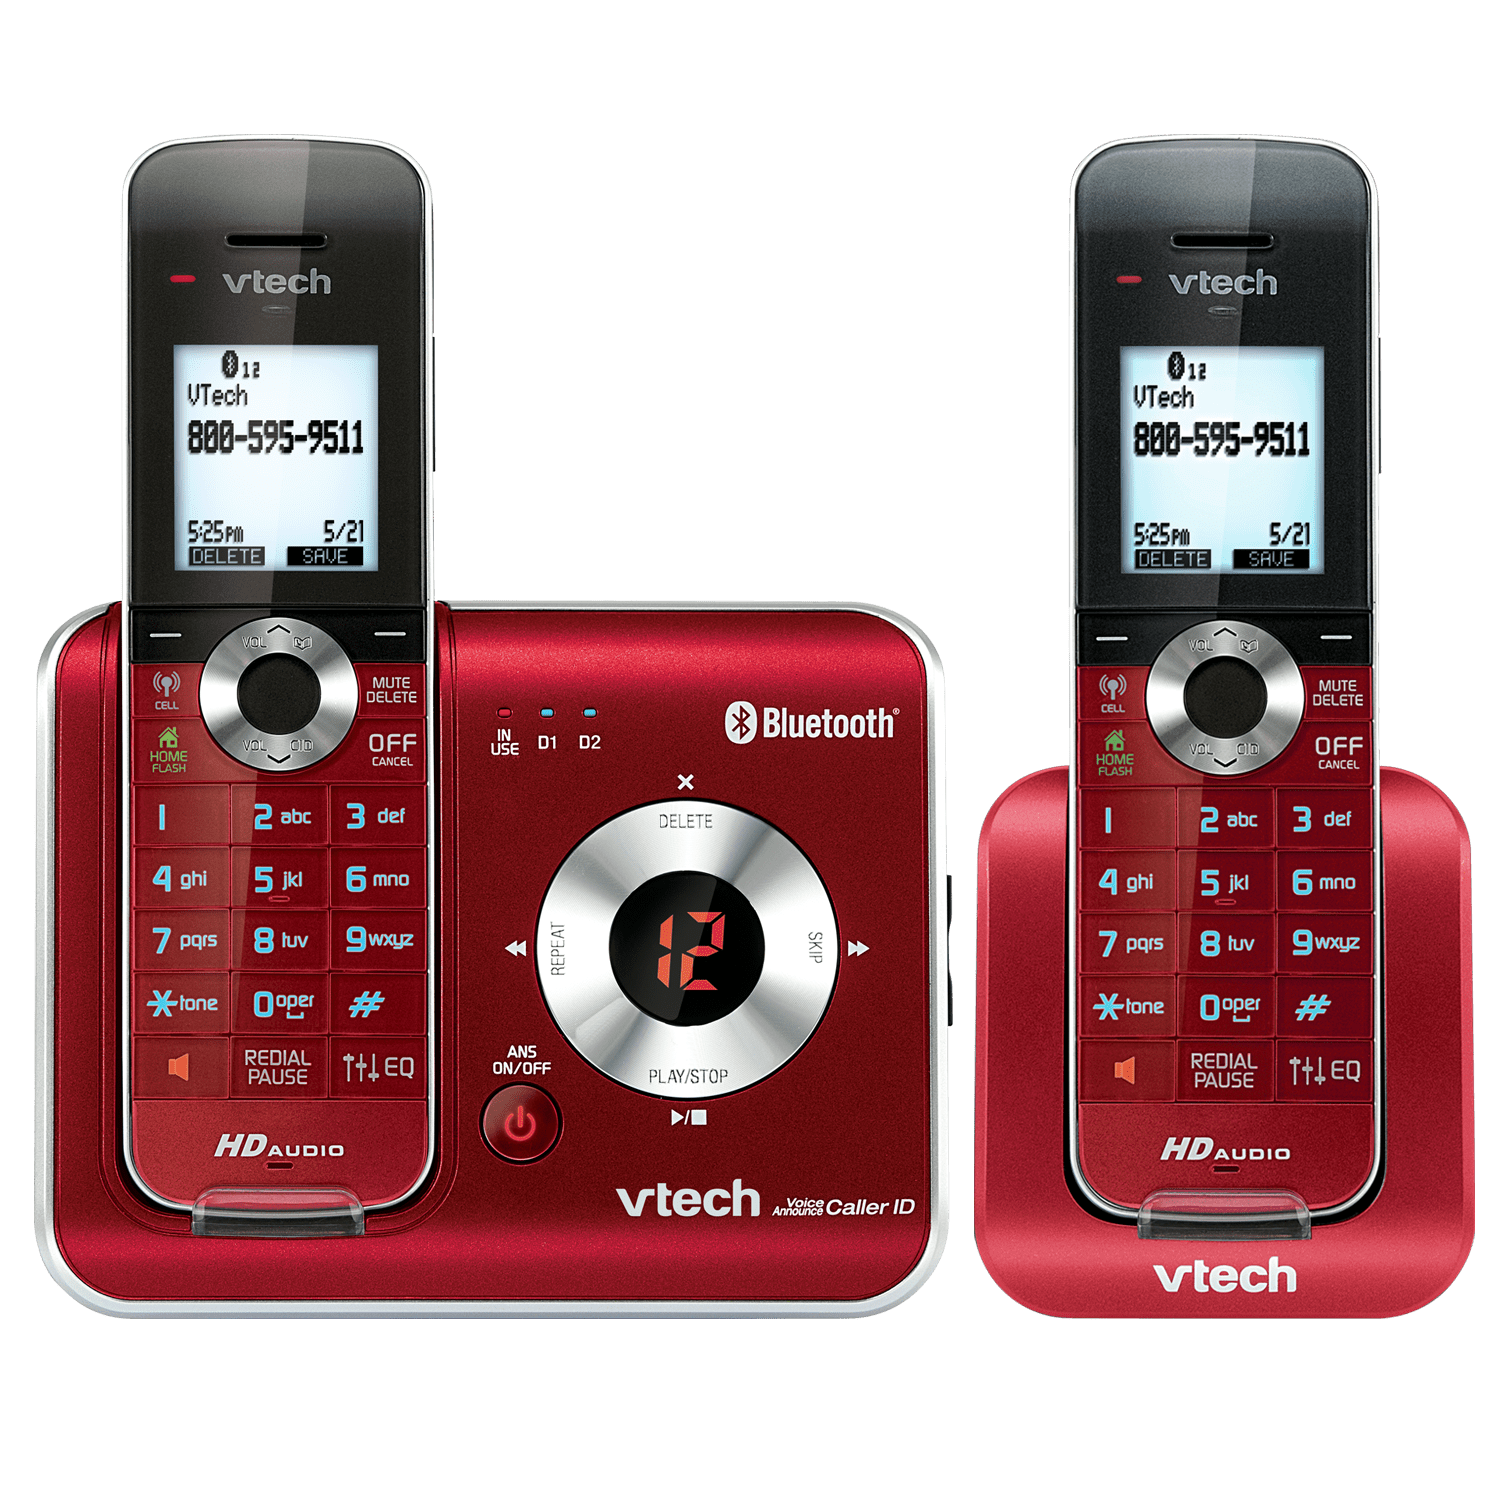 2 Handset Connect to Cell™ Answering System with Caller ID/Call Waiting